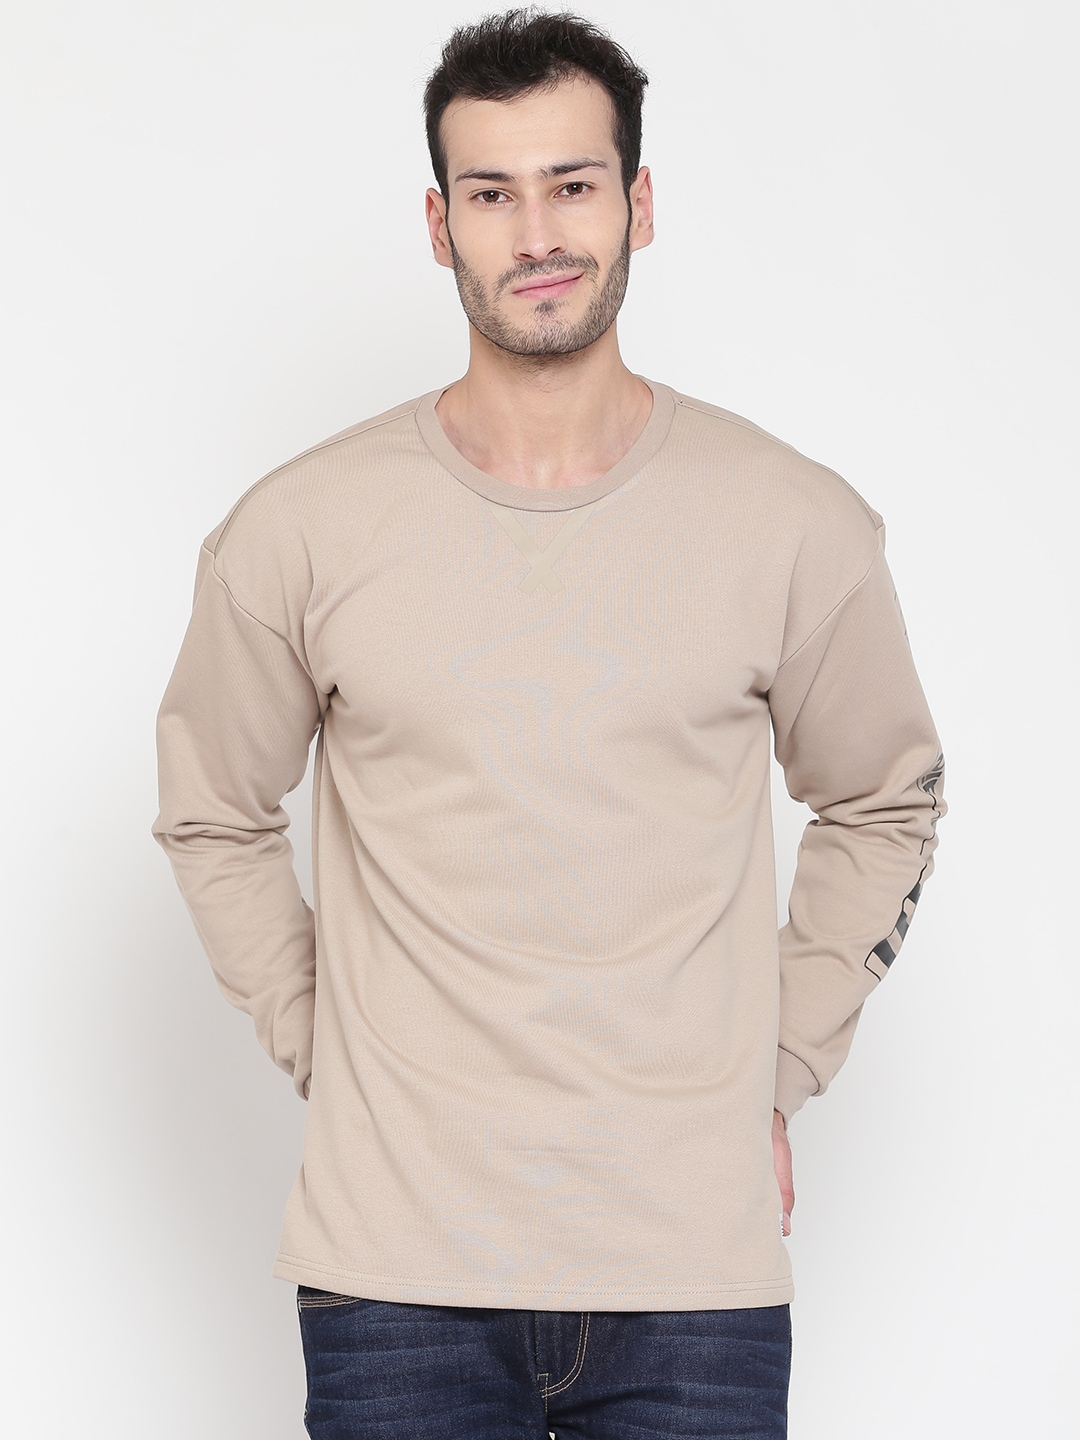 Buy Adidas NEO Beige UT Elonggated GR Men's Sweatshirt At Best Price